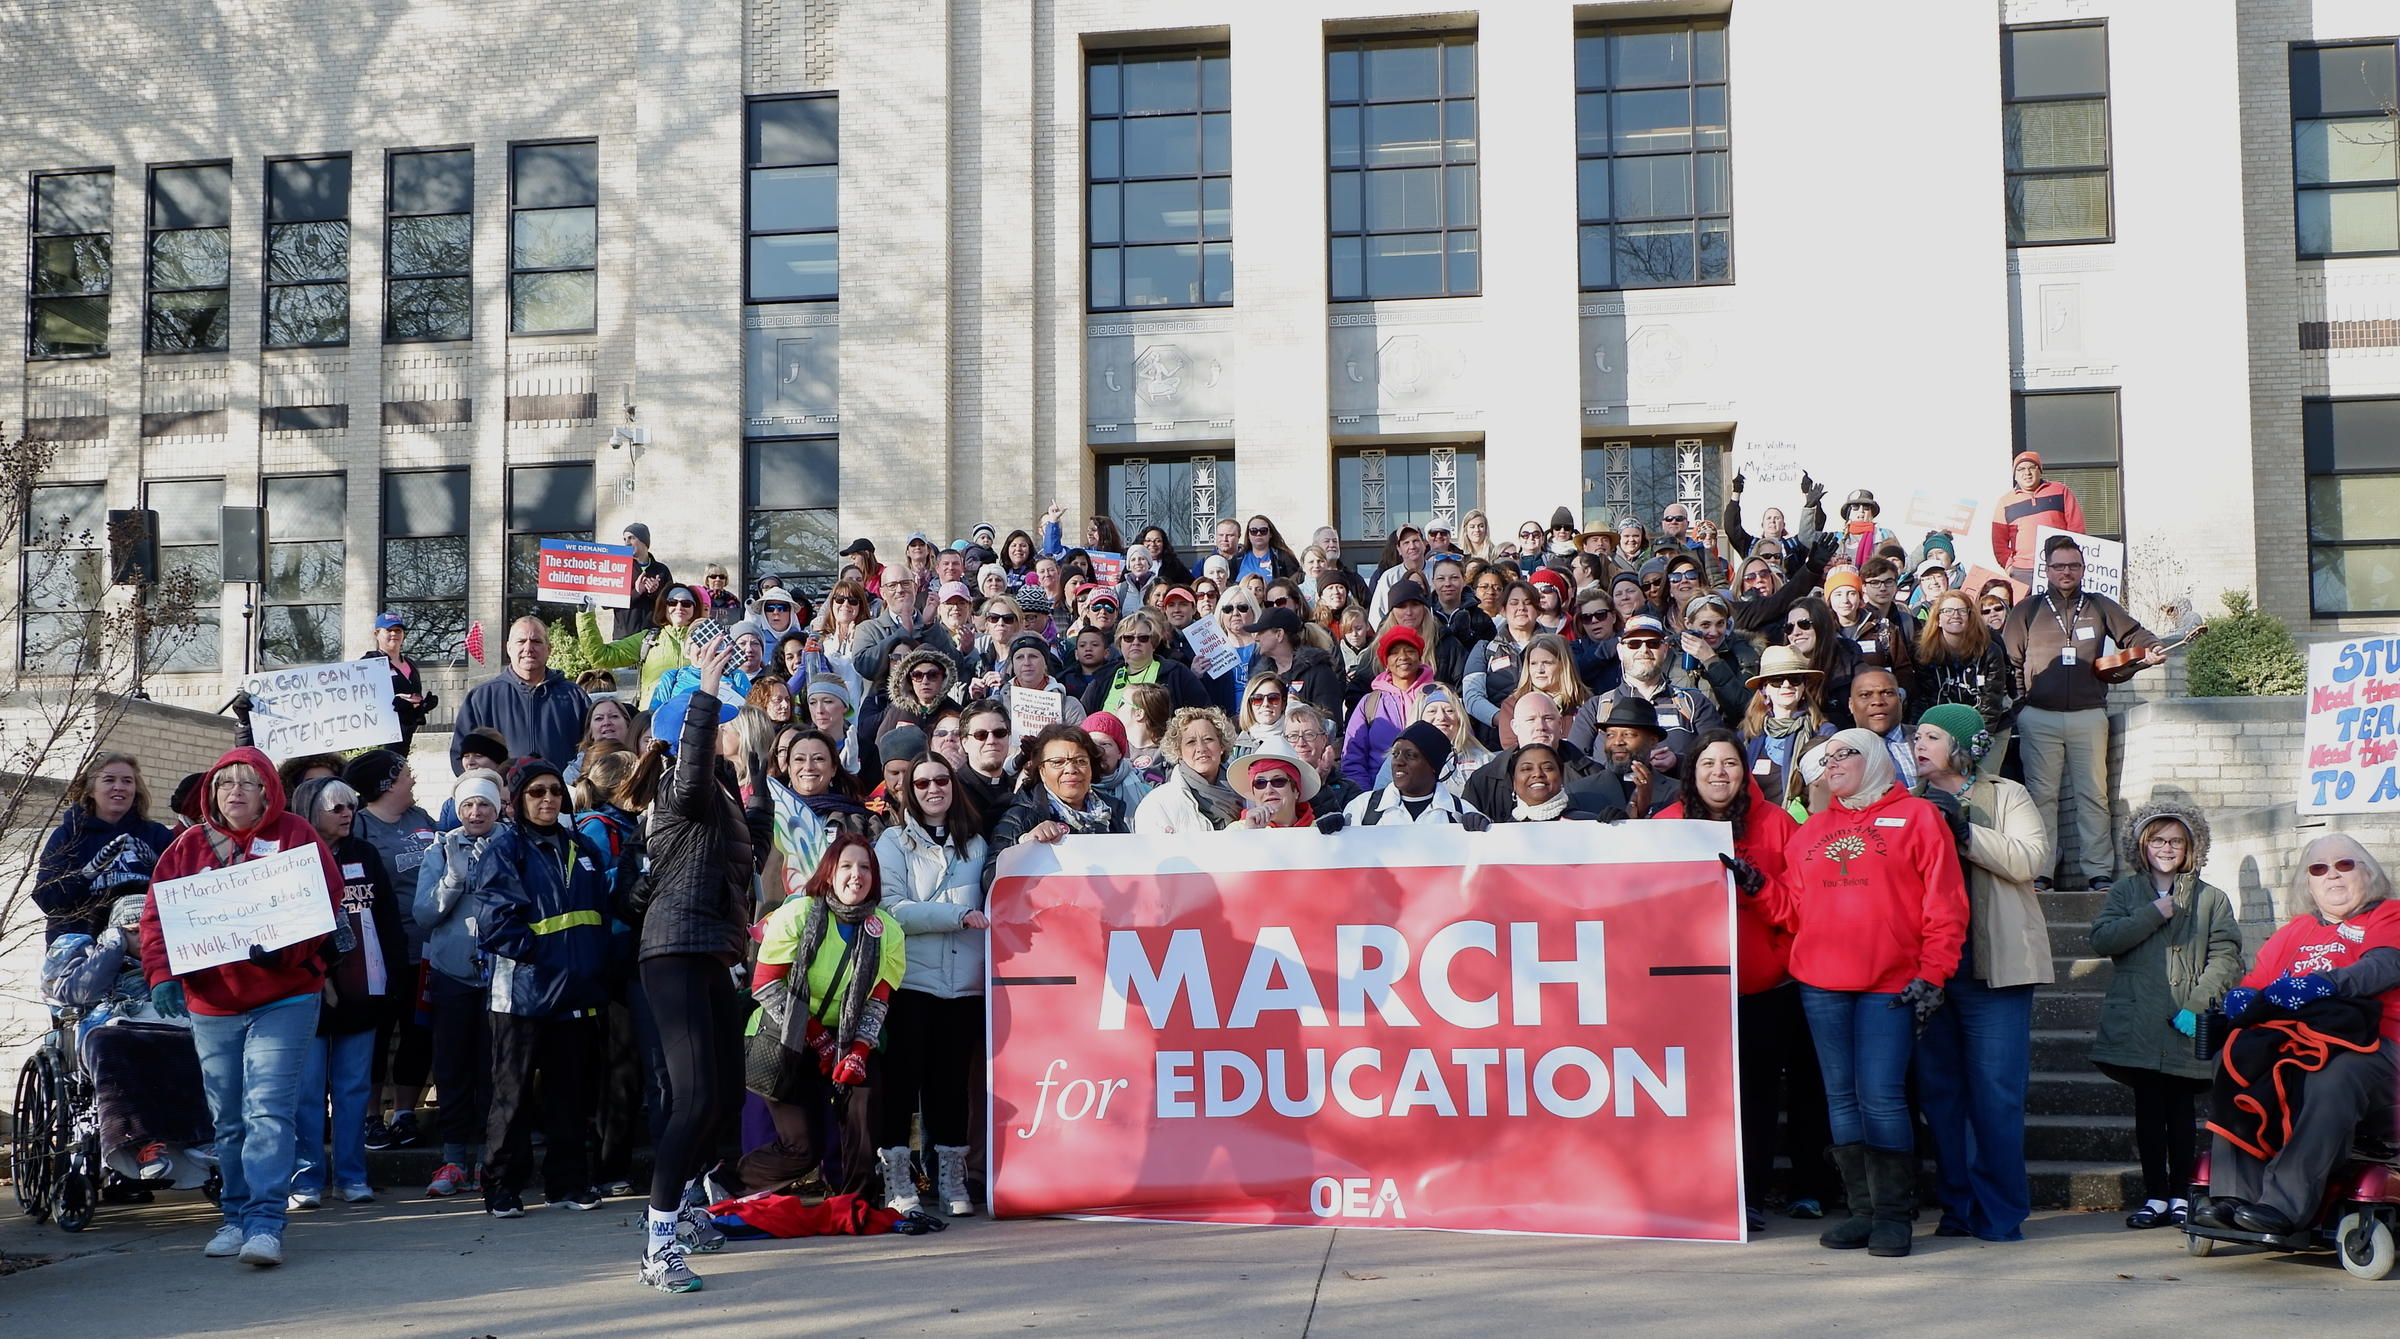 Public Skepticism Of OK Teachers Grows As Strike Stretches Into Fourth Day